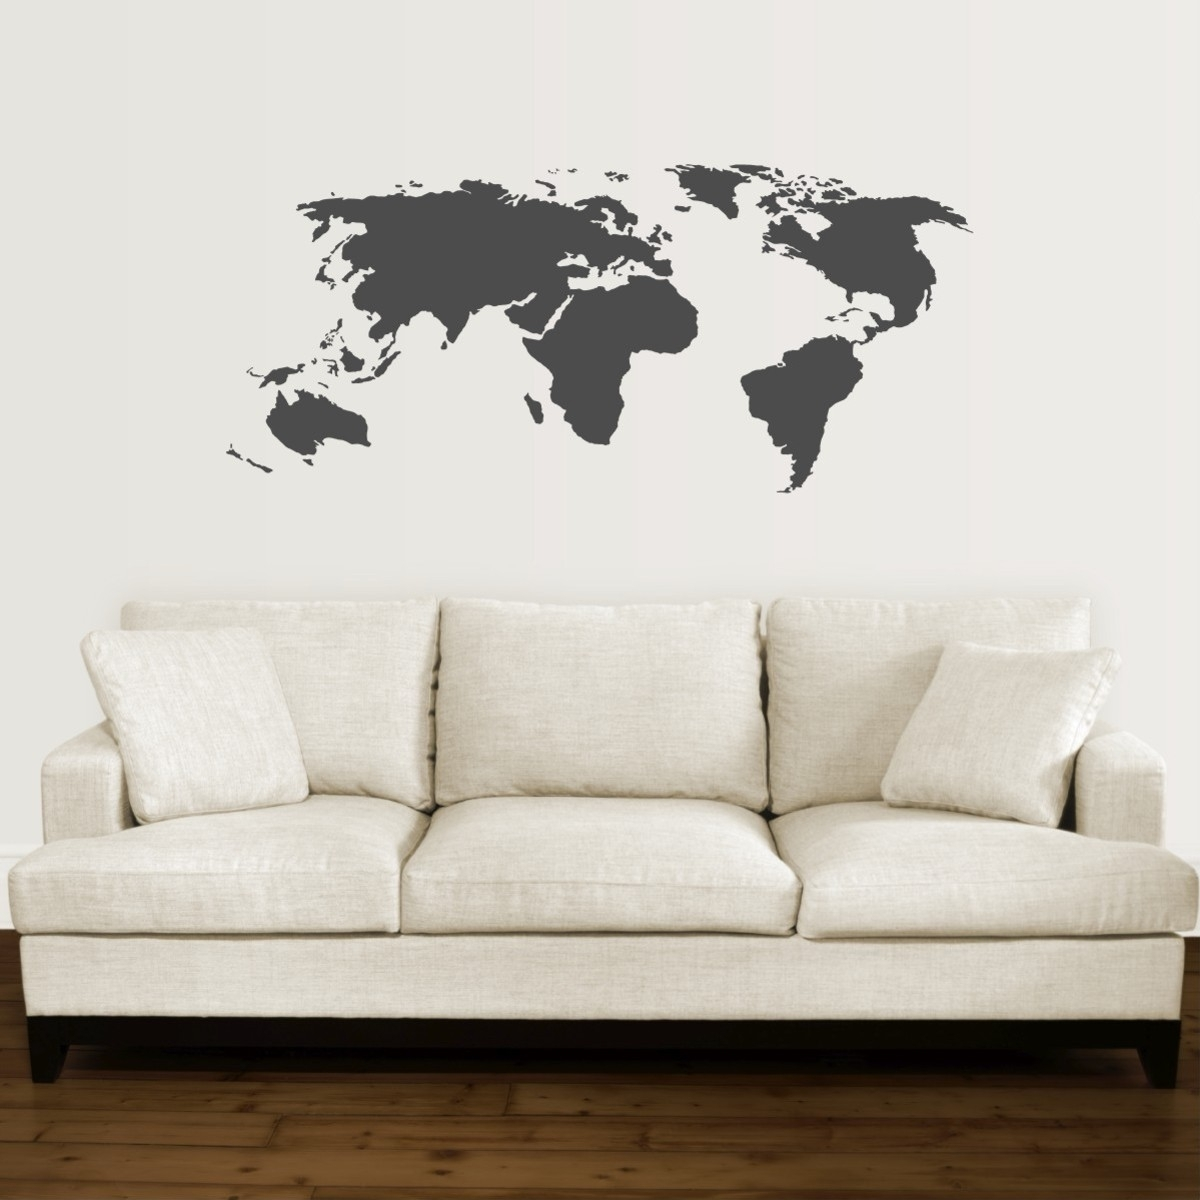 17 Cool Ideas For World Map Wall Art – Live Diy Ideas Inside Most Up To Date World Map Wall Art (View 9 of 15)